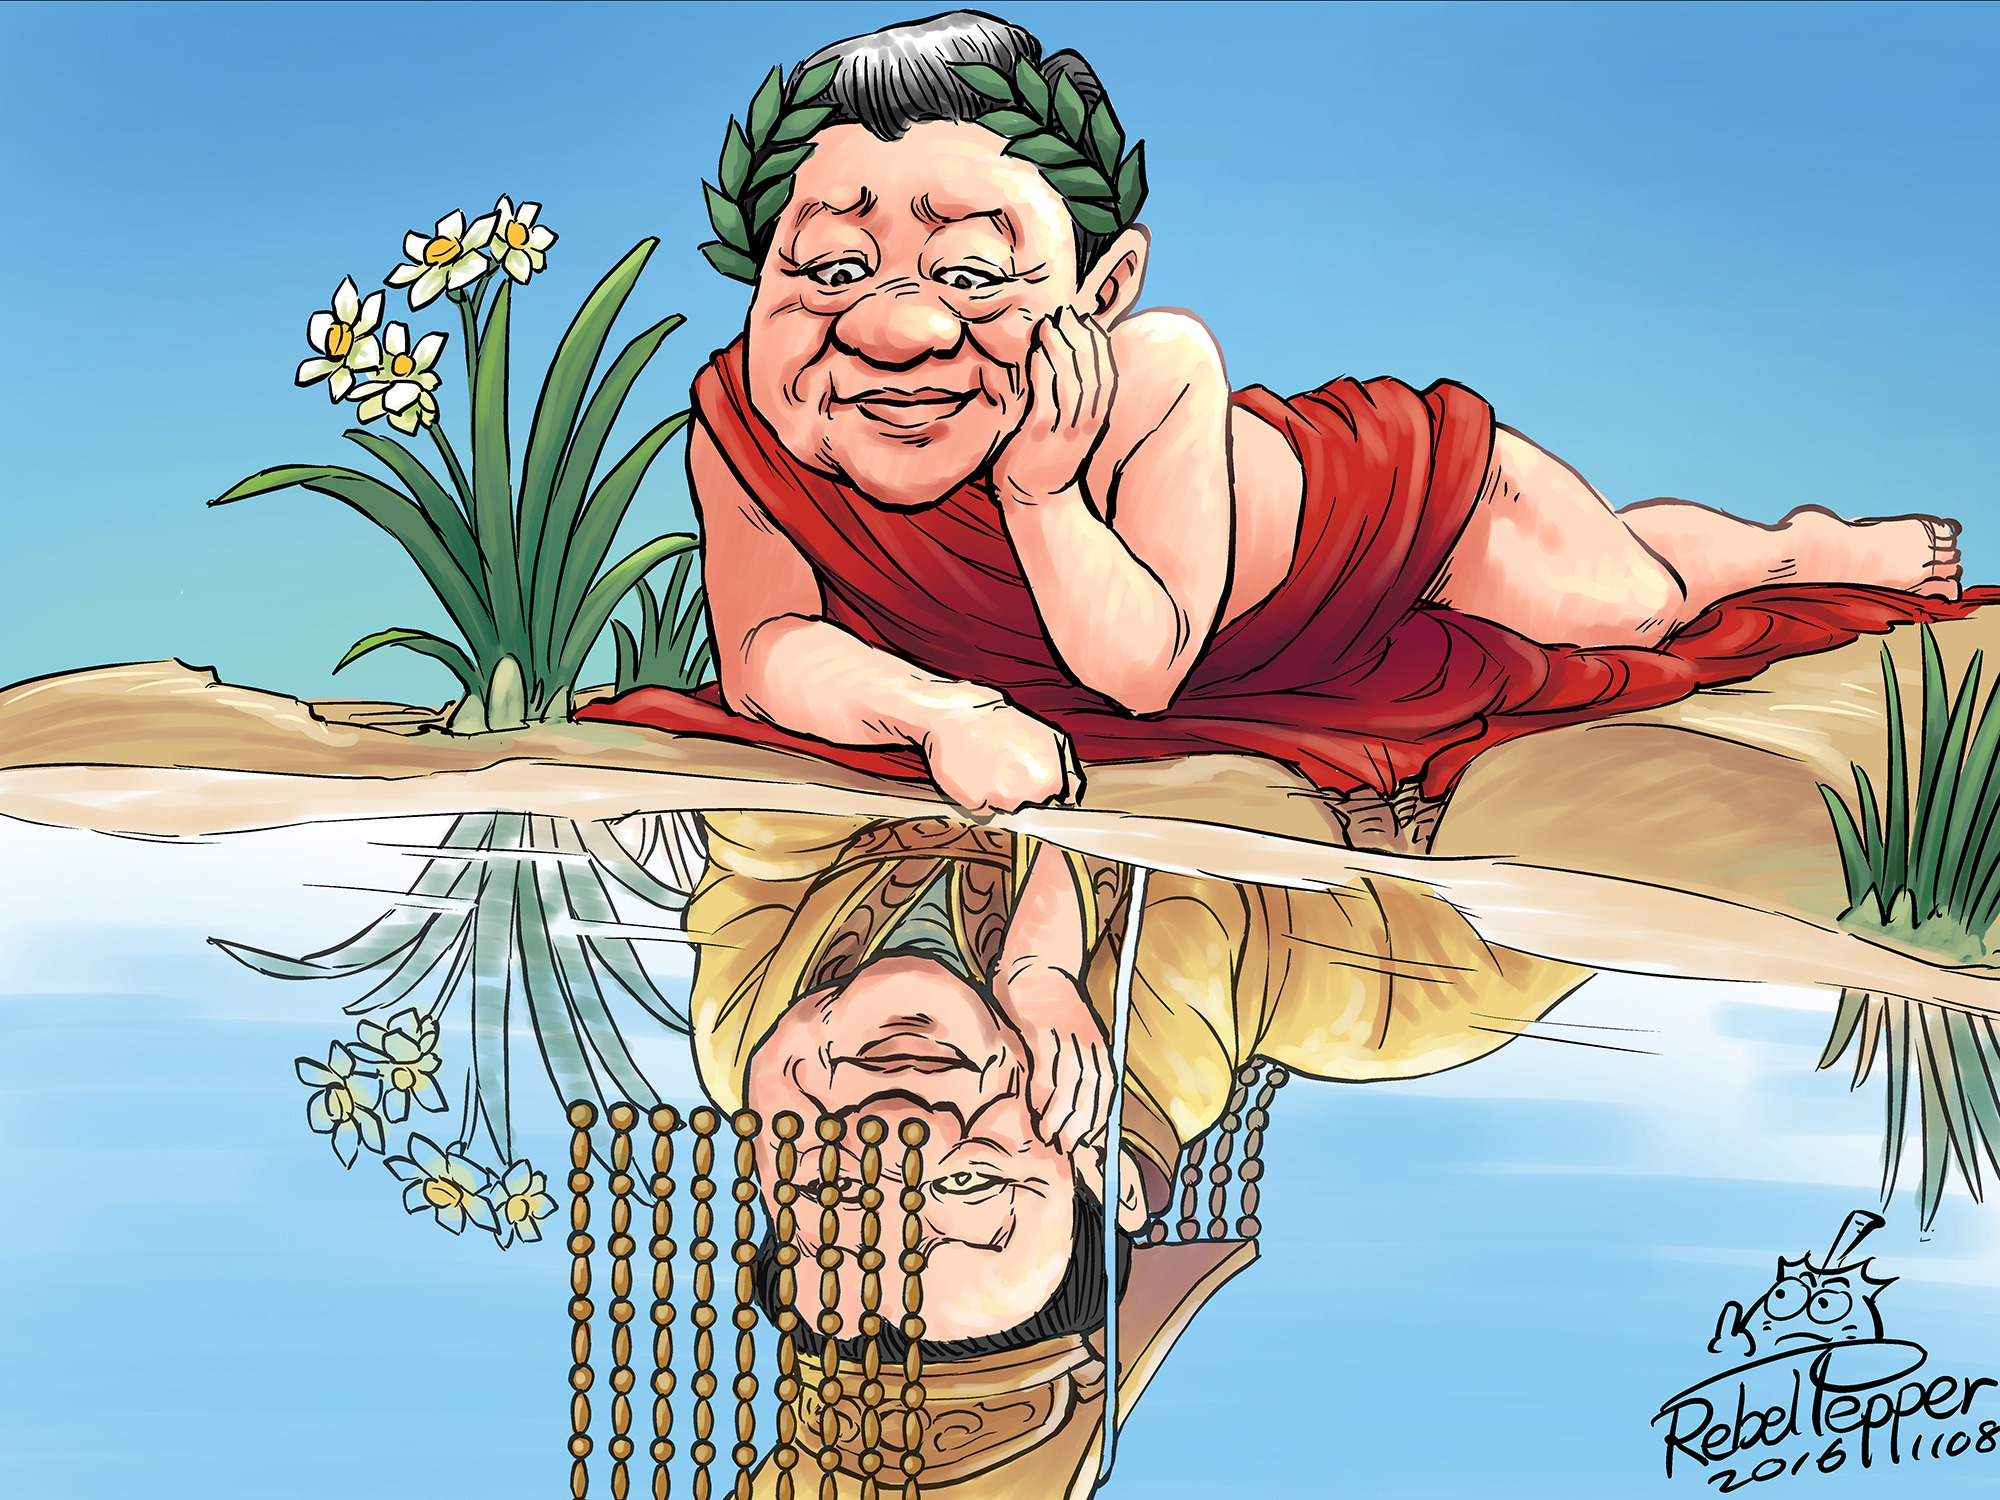 In this cartoon, Xi Jinping of China gazes at his reflection in a reference to the Greek legend of Narcissus.